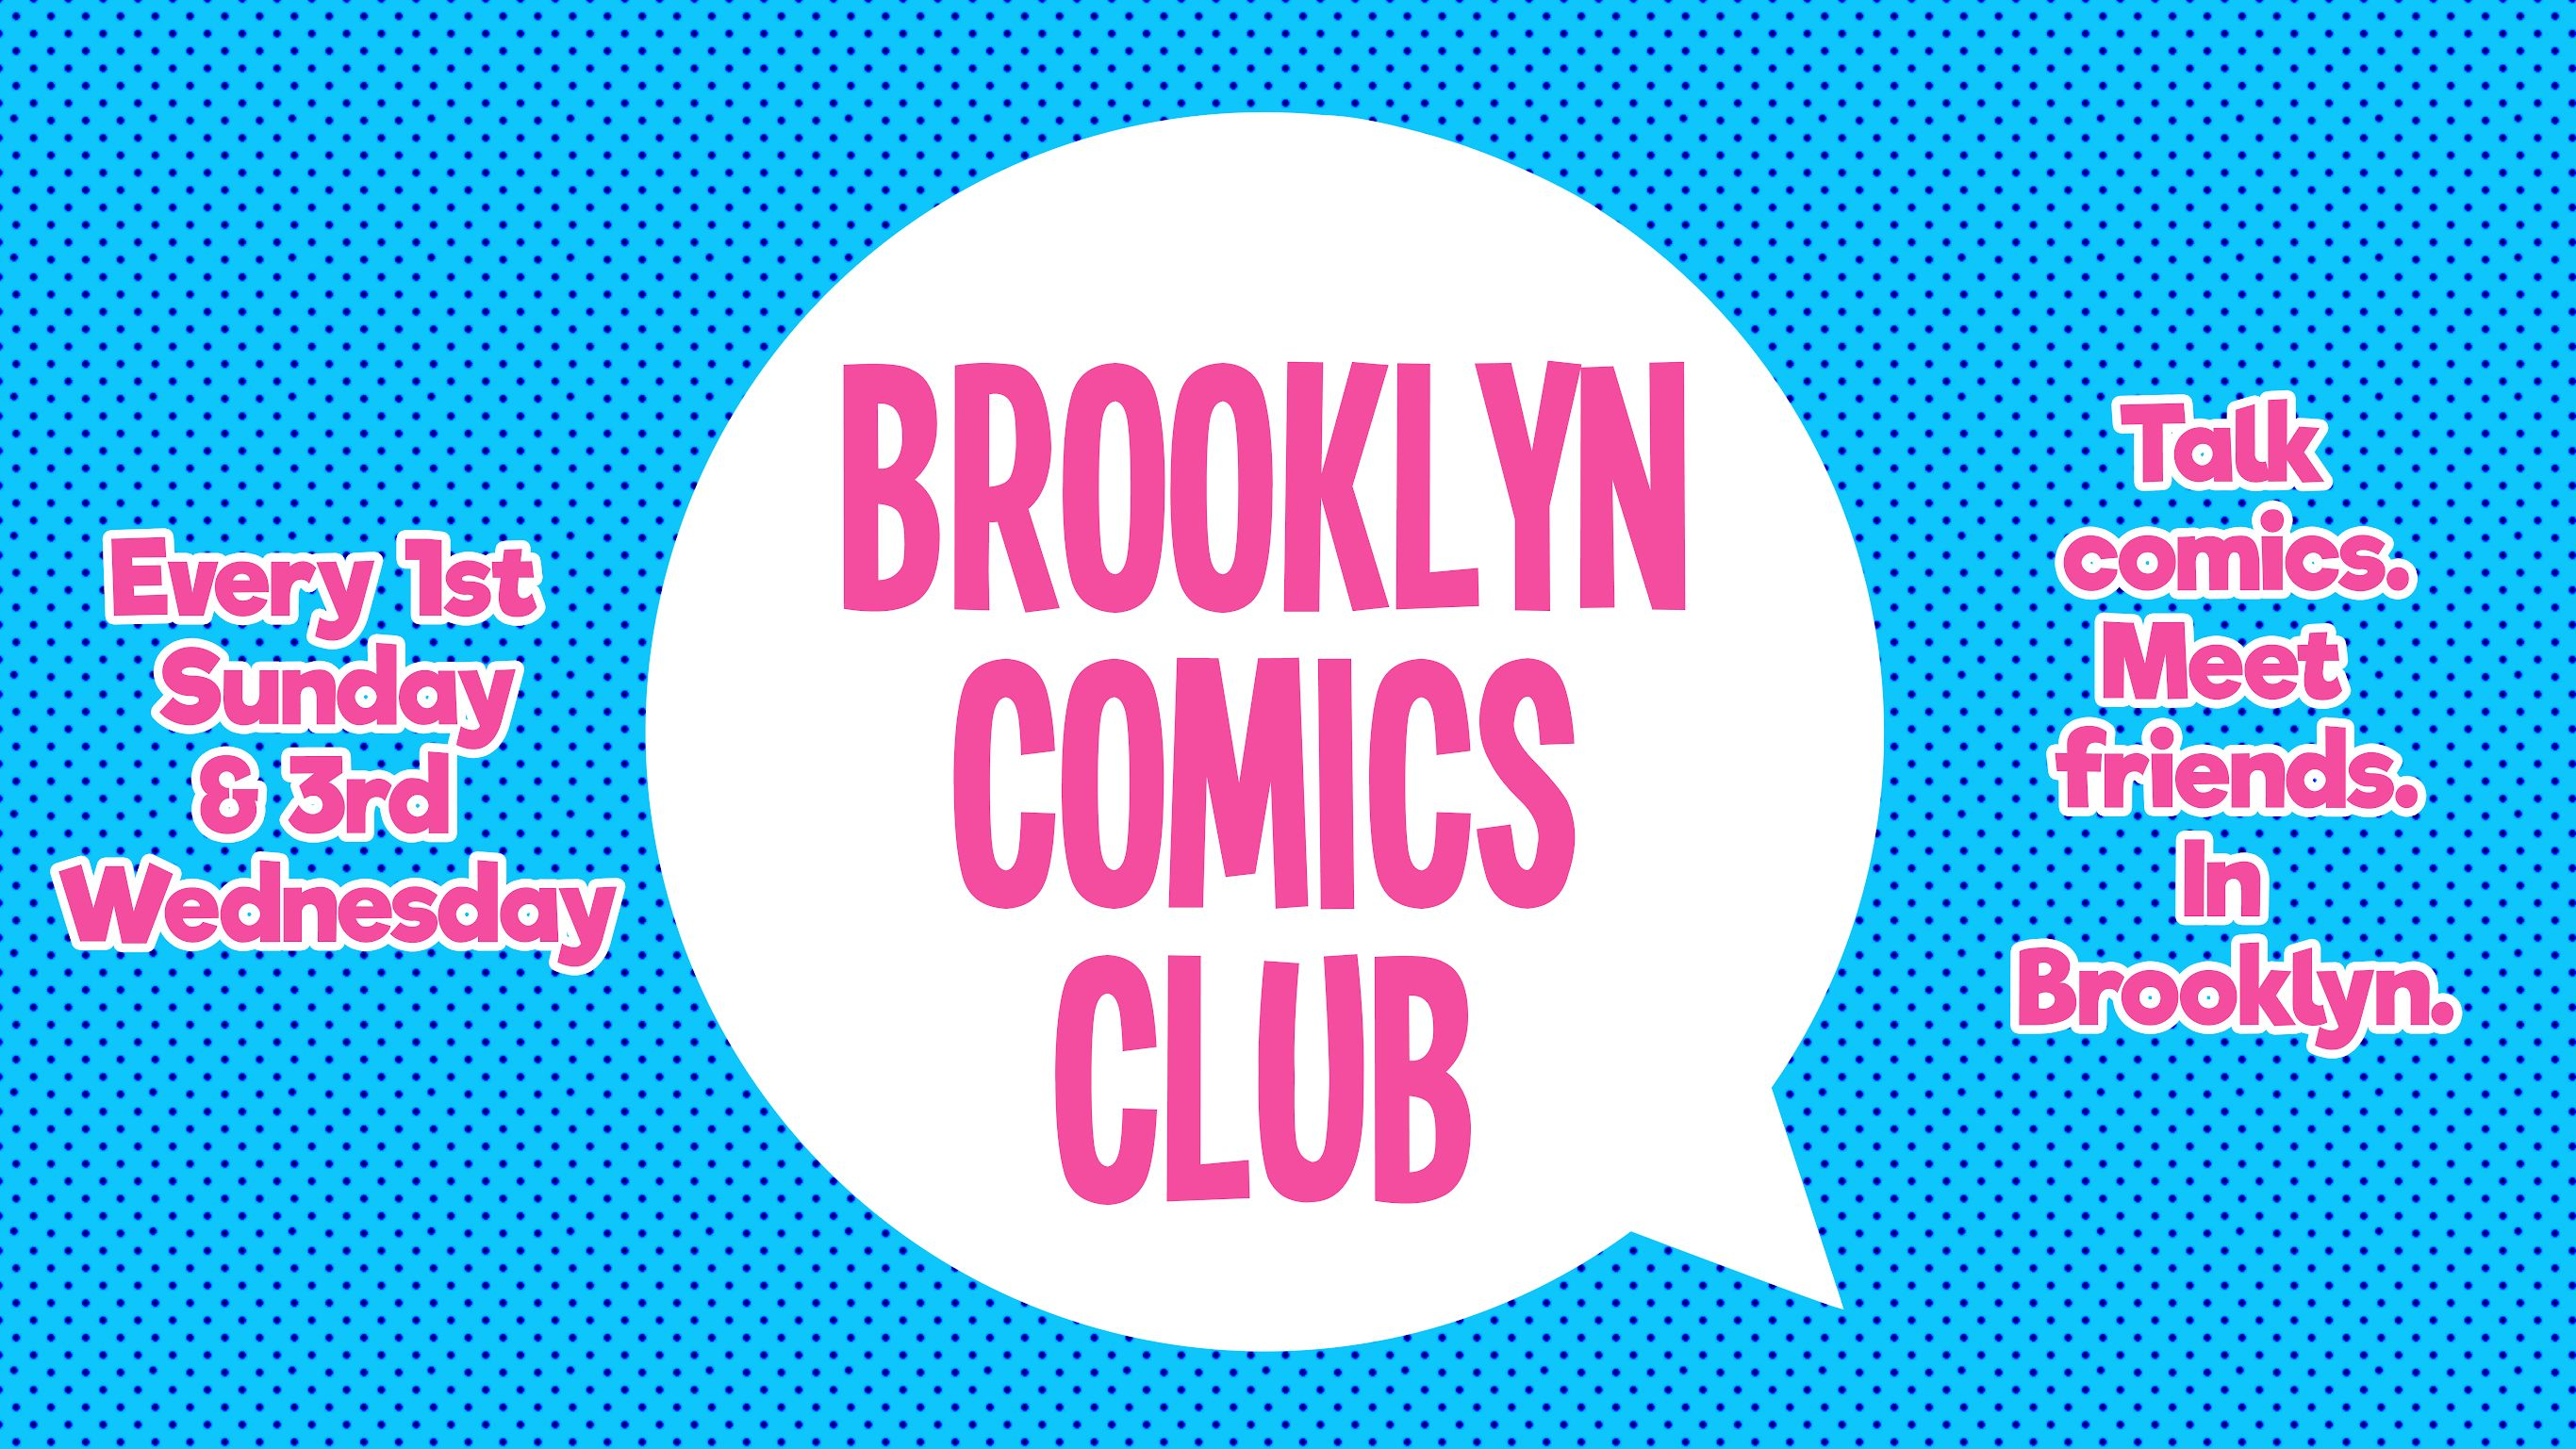 Brooklyn Comics Club